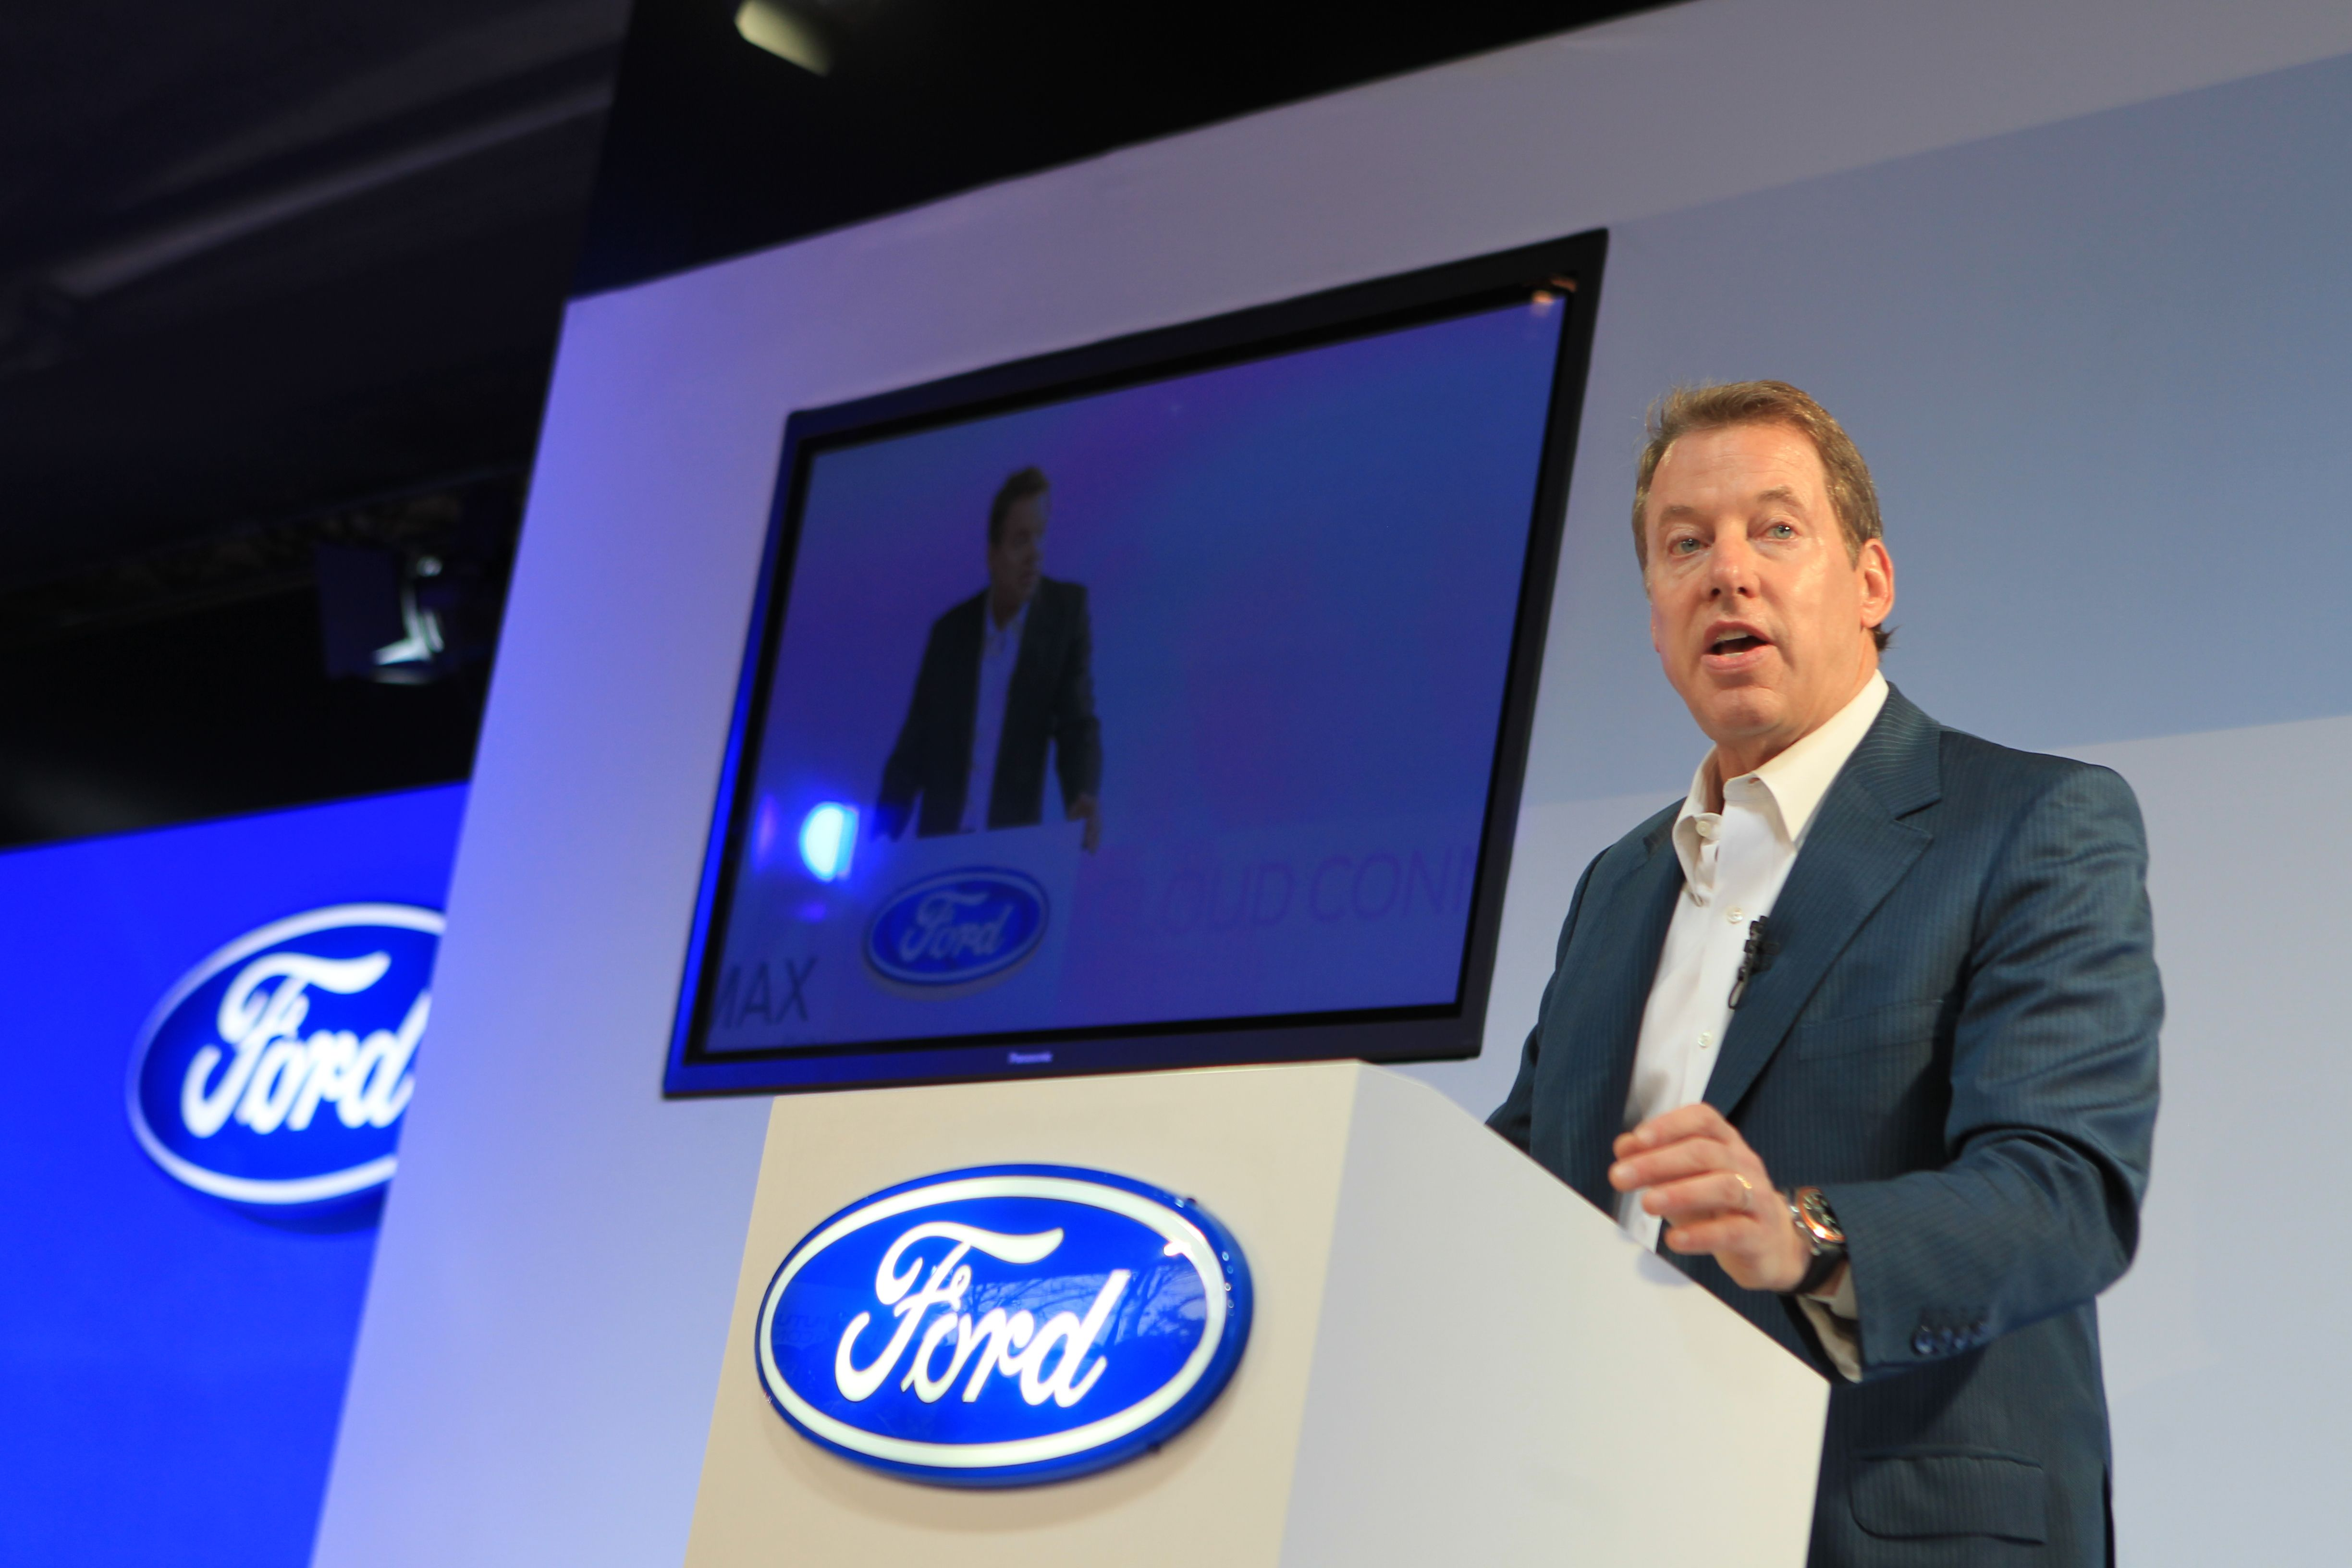 Bill Ford Outlines Vision of Future Transportation at Mobile World Congress